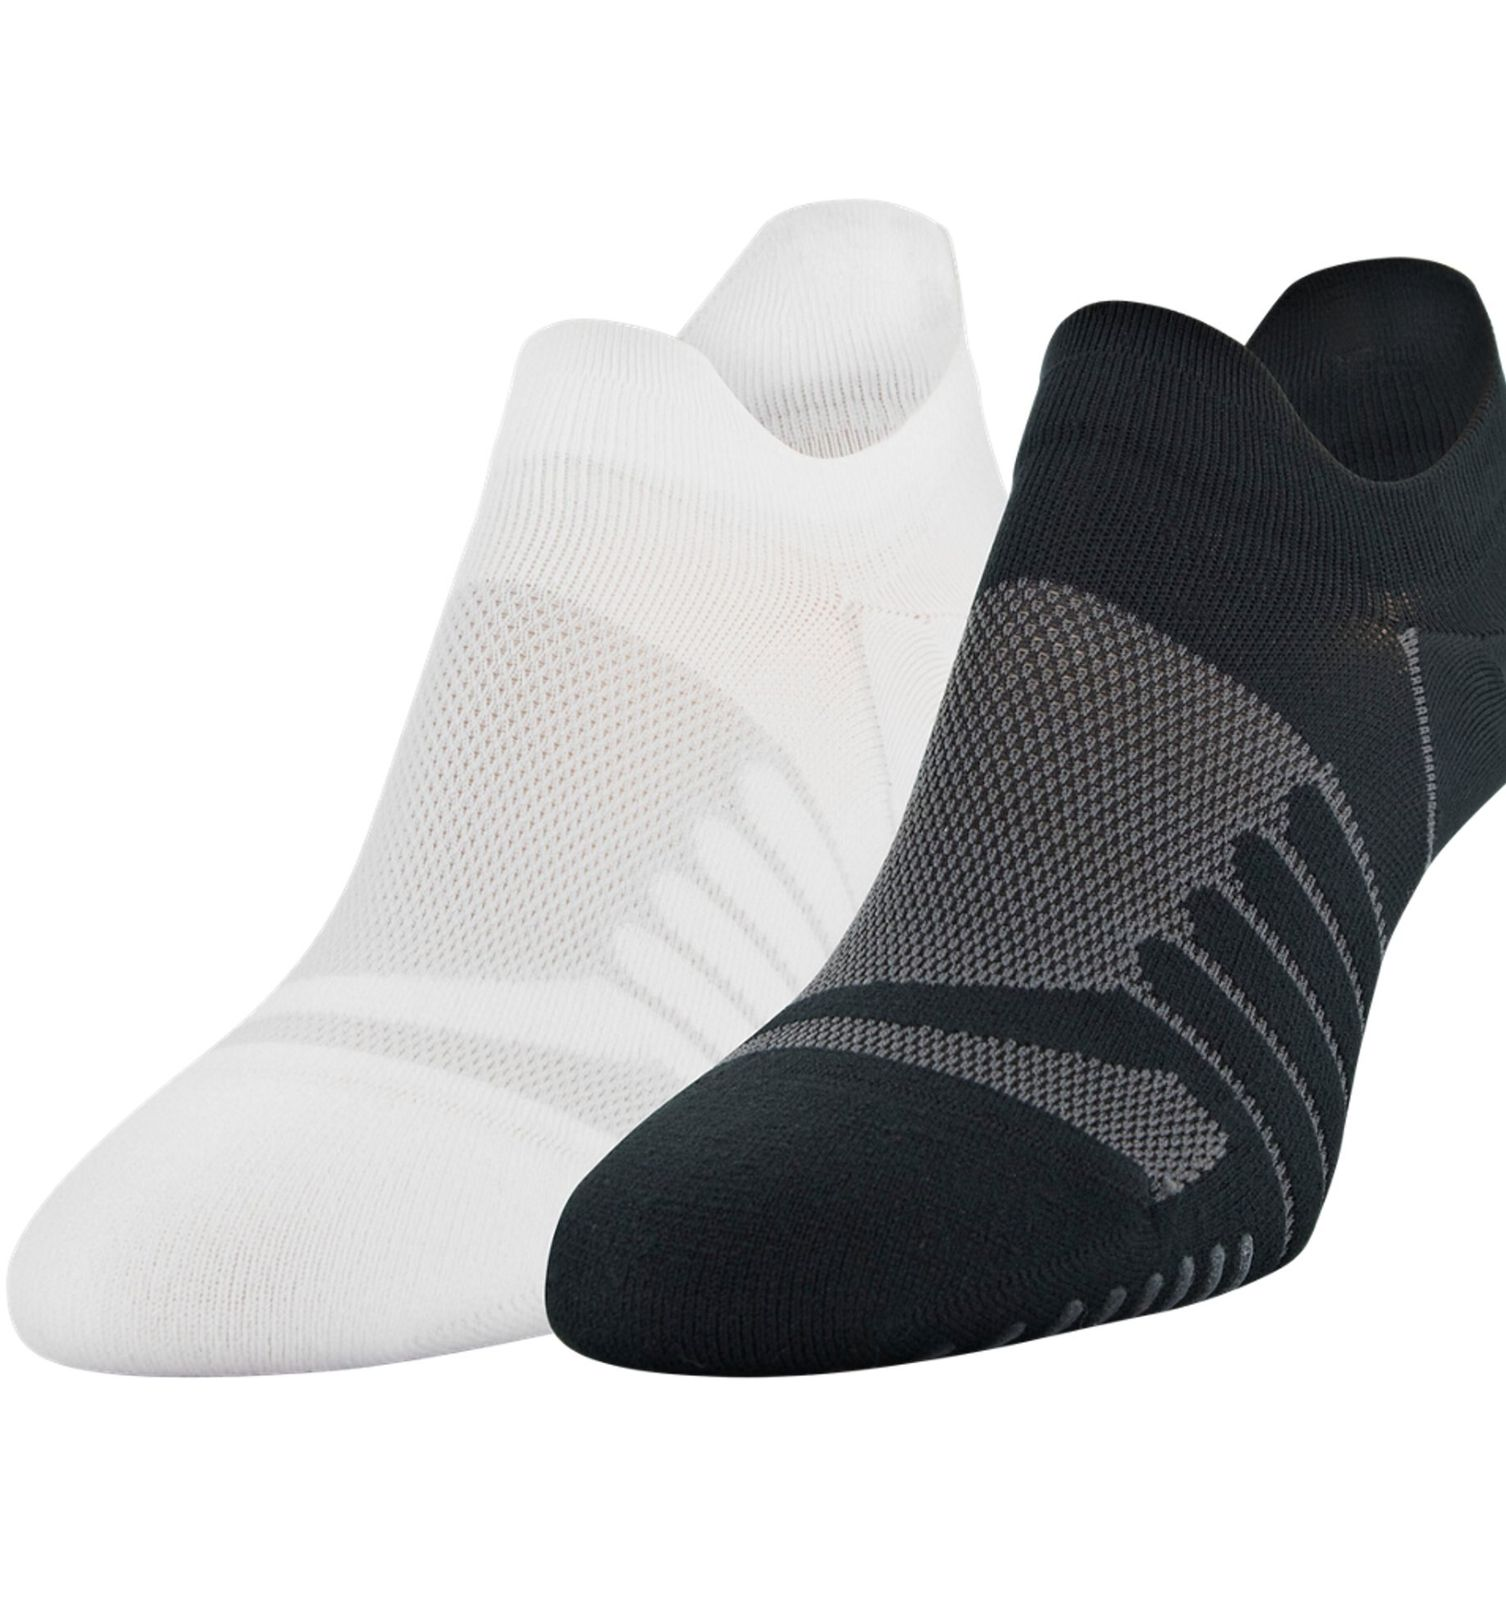 Women's Pinnacle Lo Lo Socks 2pk